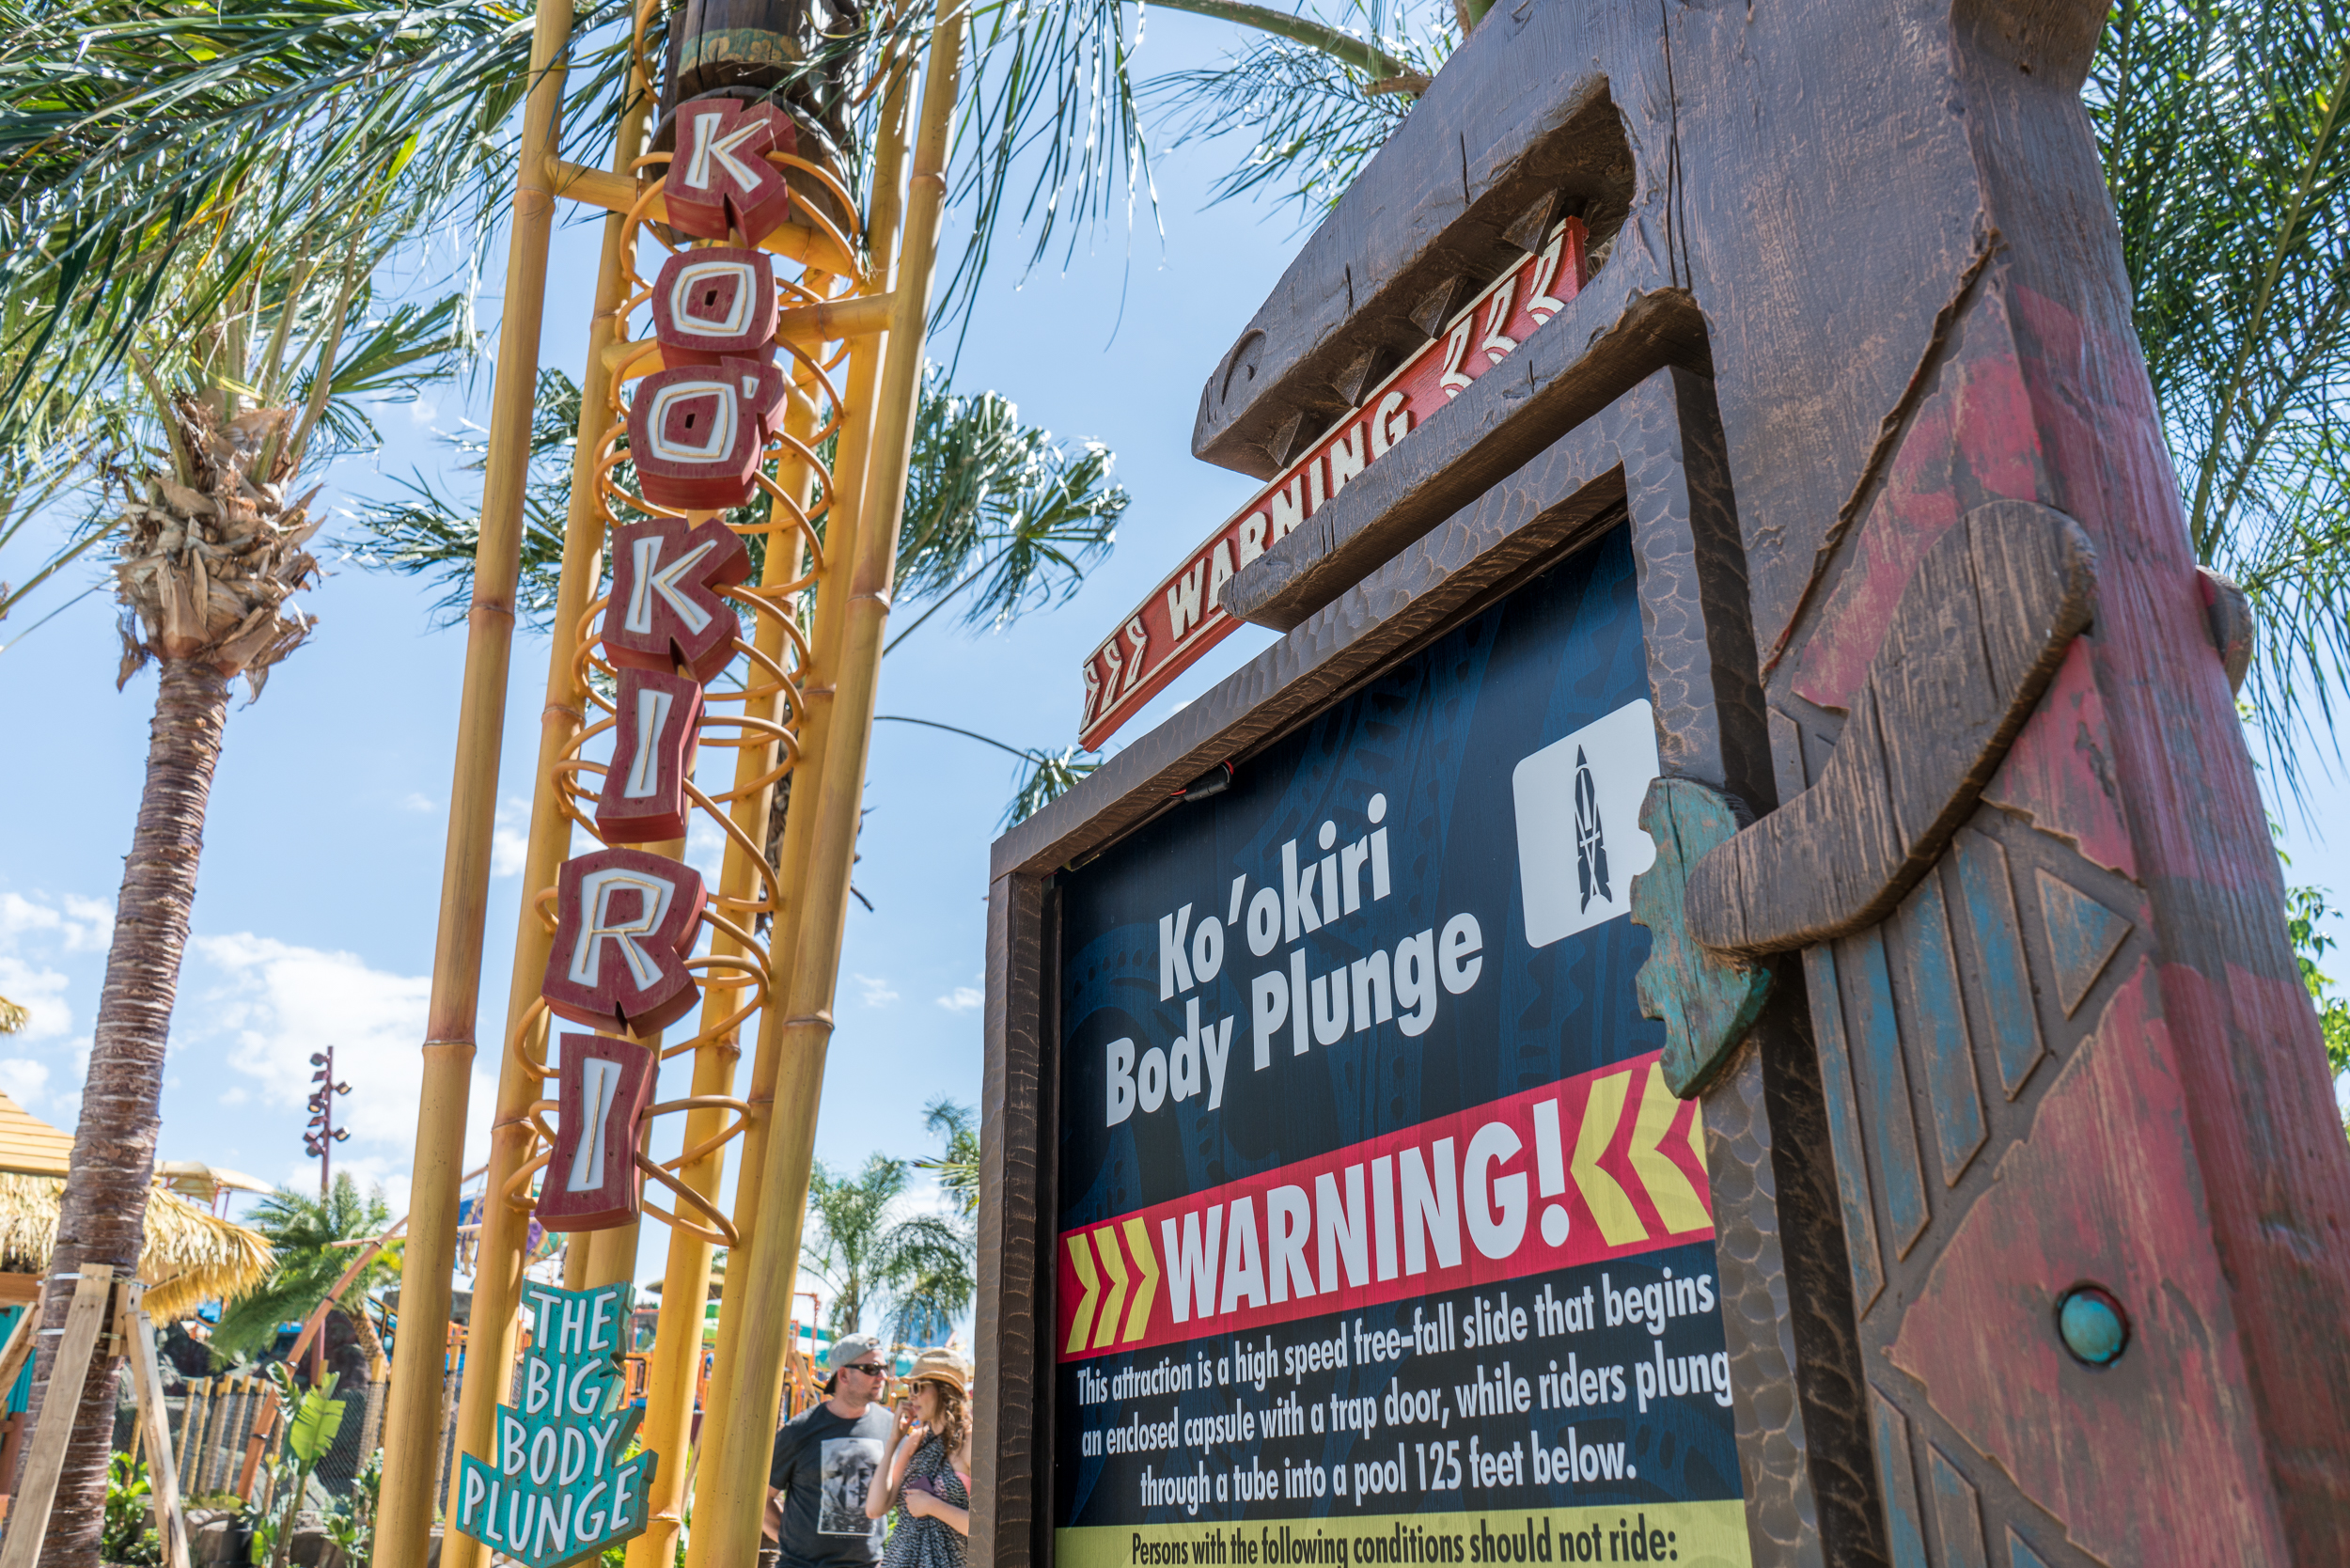 A warning sign prominently displayed outside Ko'okiri Body Plunge